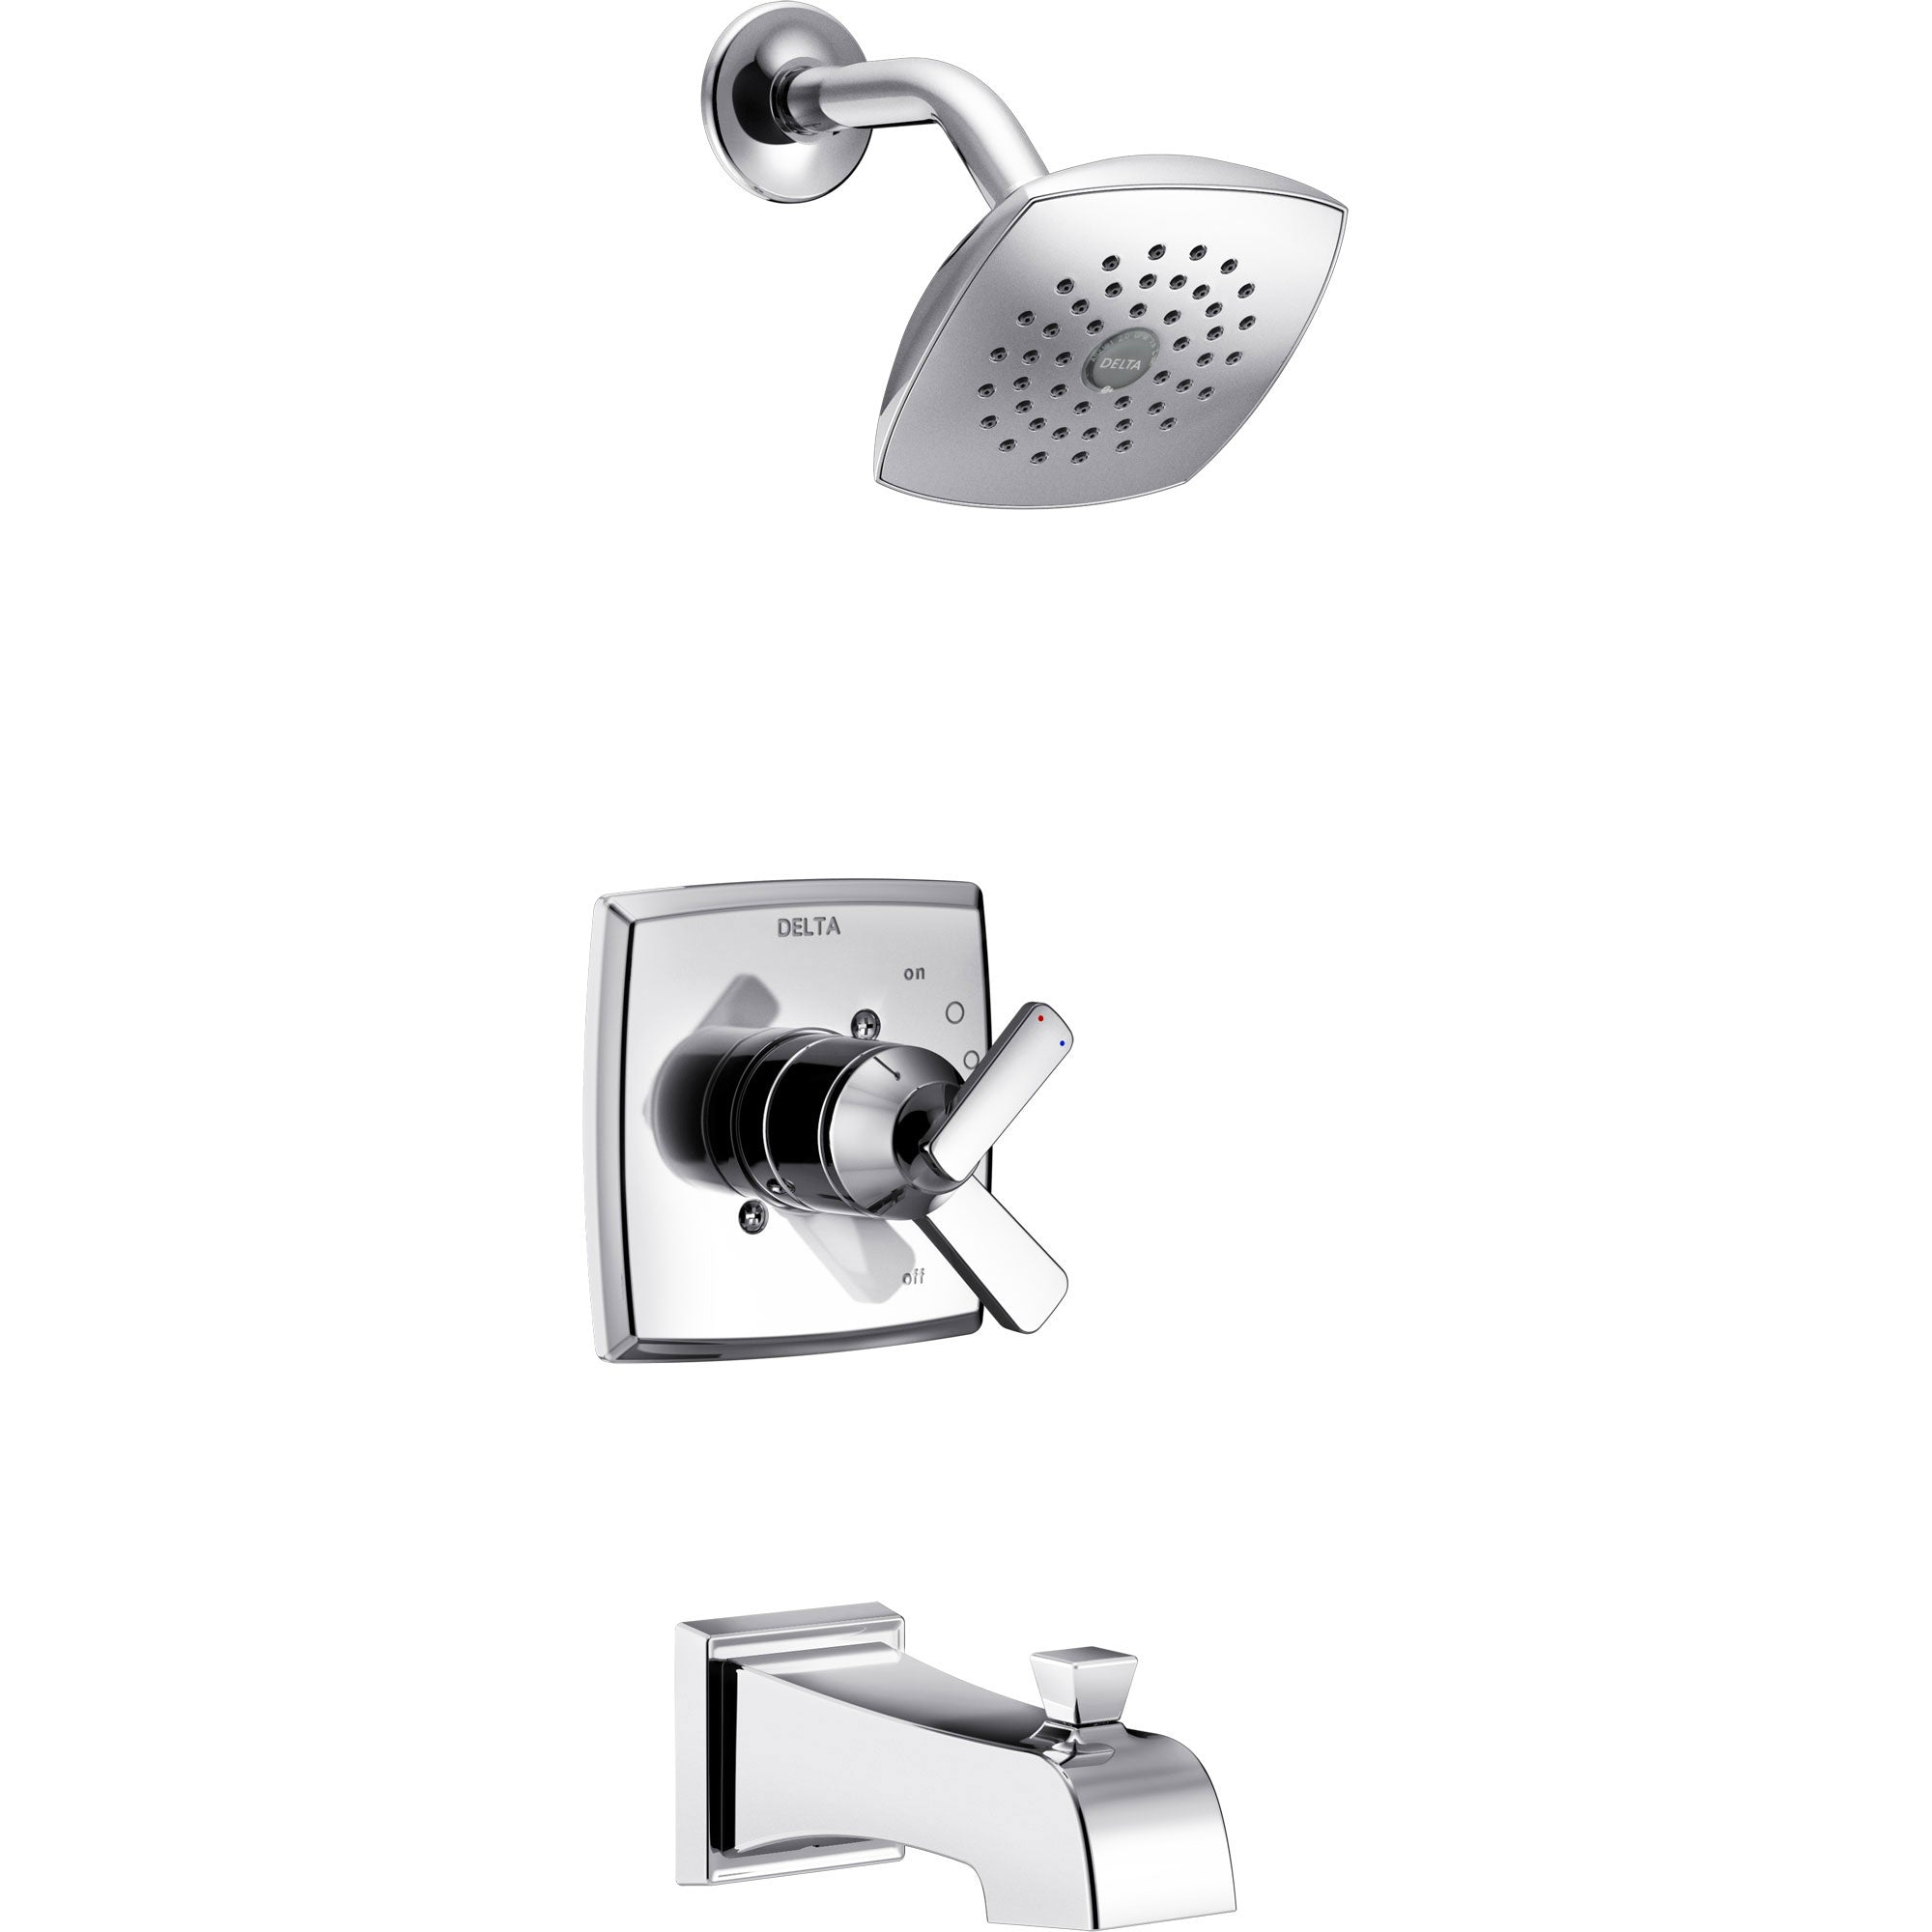 Delta Ashlyn Chrome Finish Monitor 17 Series Tub and Shower Combo Faucet with Dual Temperature and Pressure Control INCLUDES Rough-in Valve with Stops D1125V